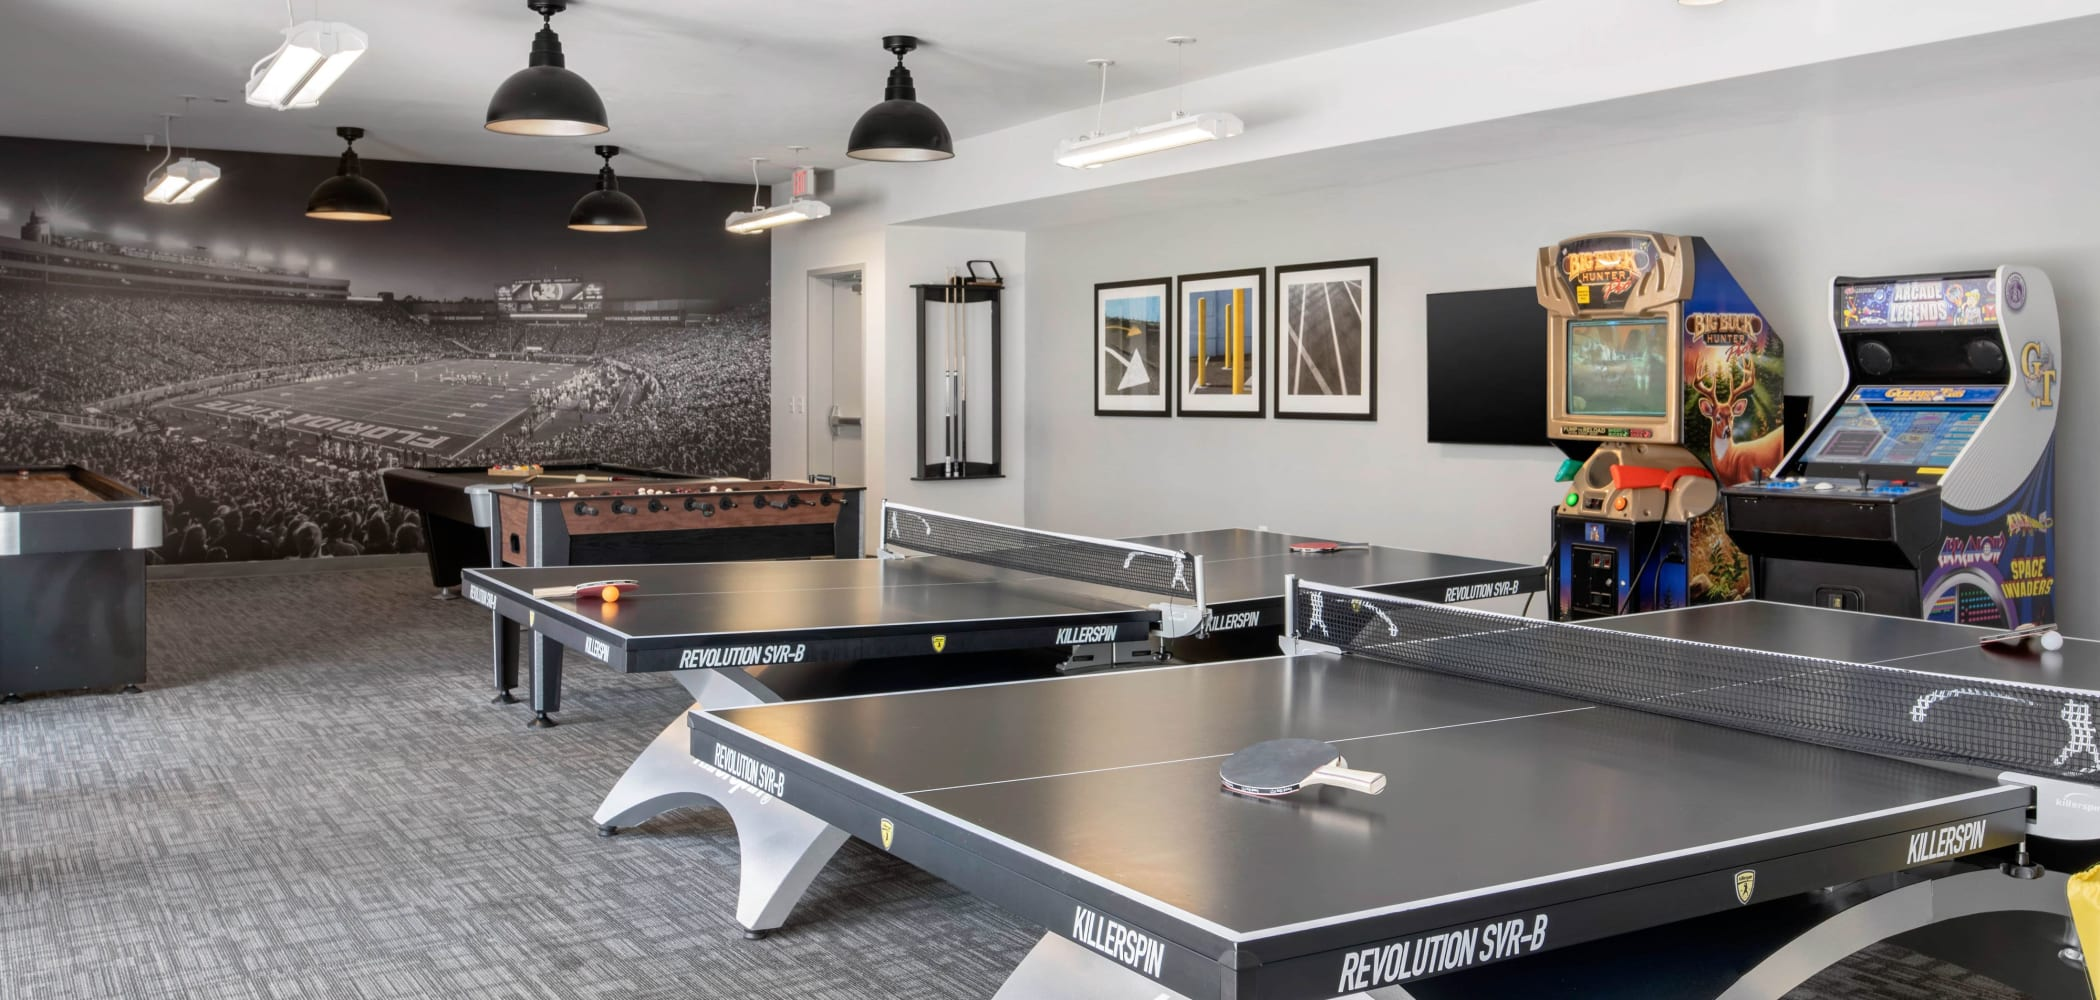 Ping pong table at Onyx in Tallahassee, Florida